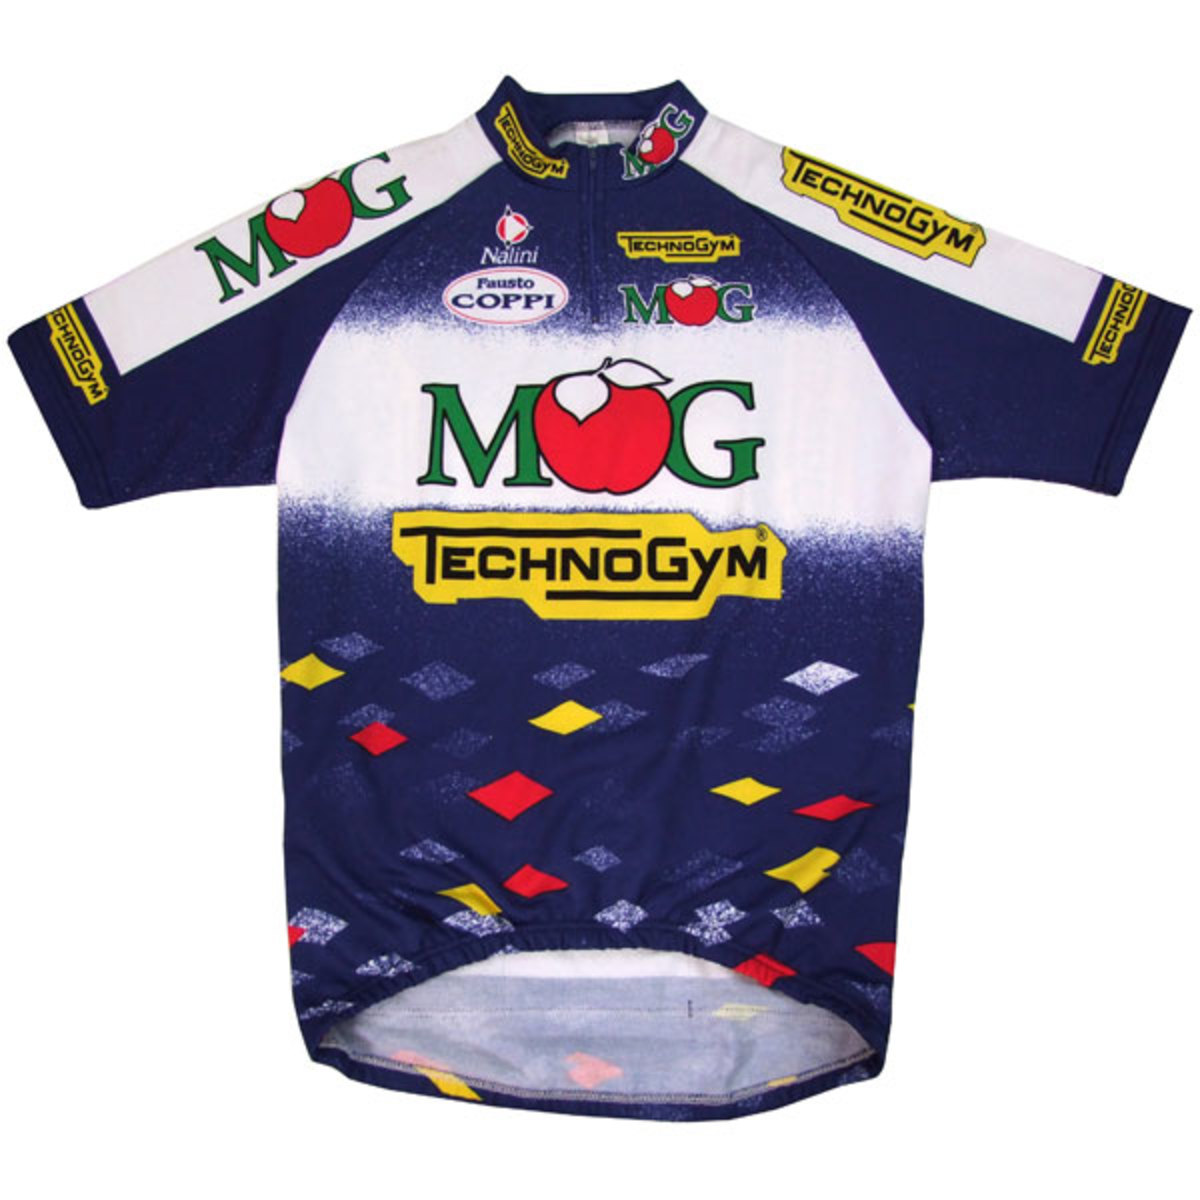 The Iconic MG Technogym team of 1996 featured such greats as Giani Bugno and Michele Bartoli